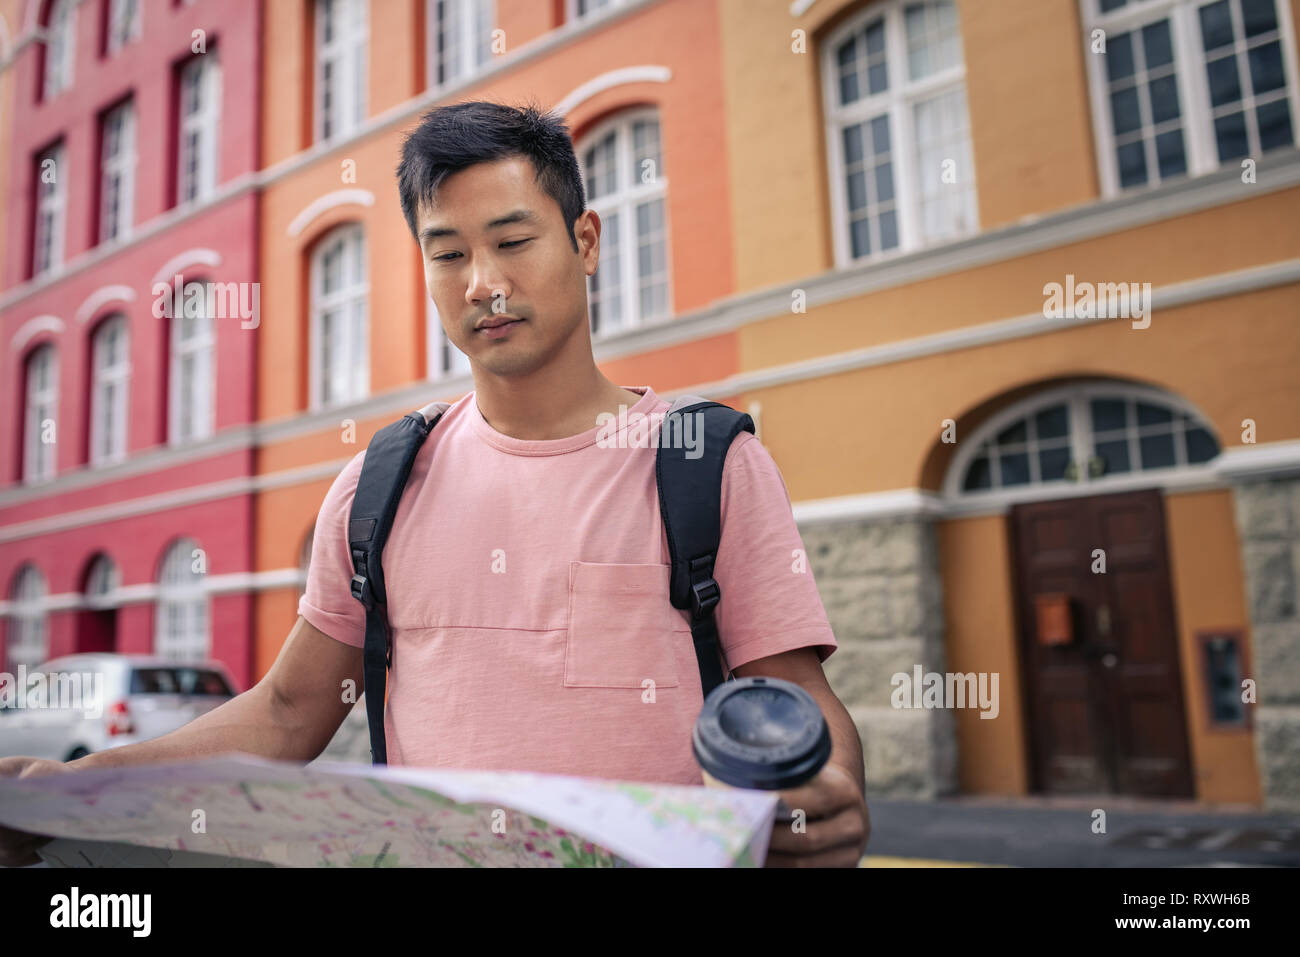 Young Asian man reading a map while exploring the city Stock Photo